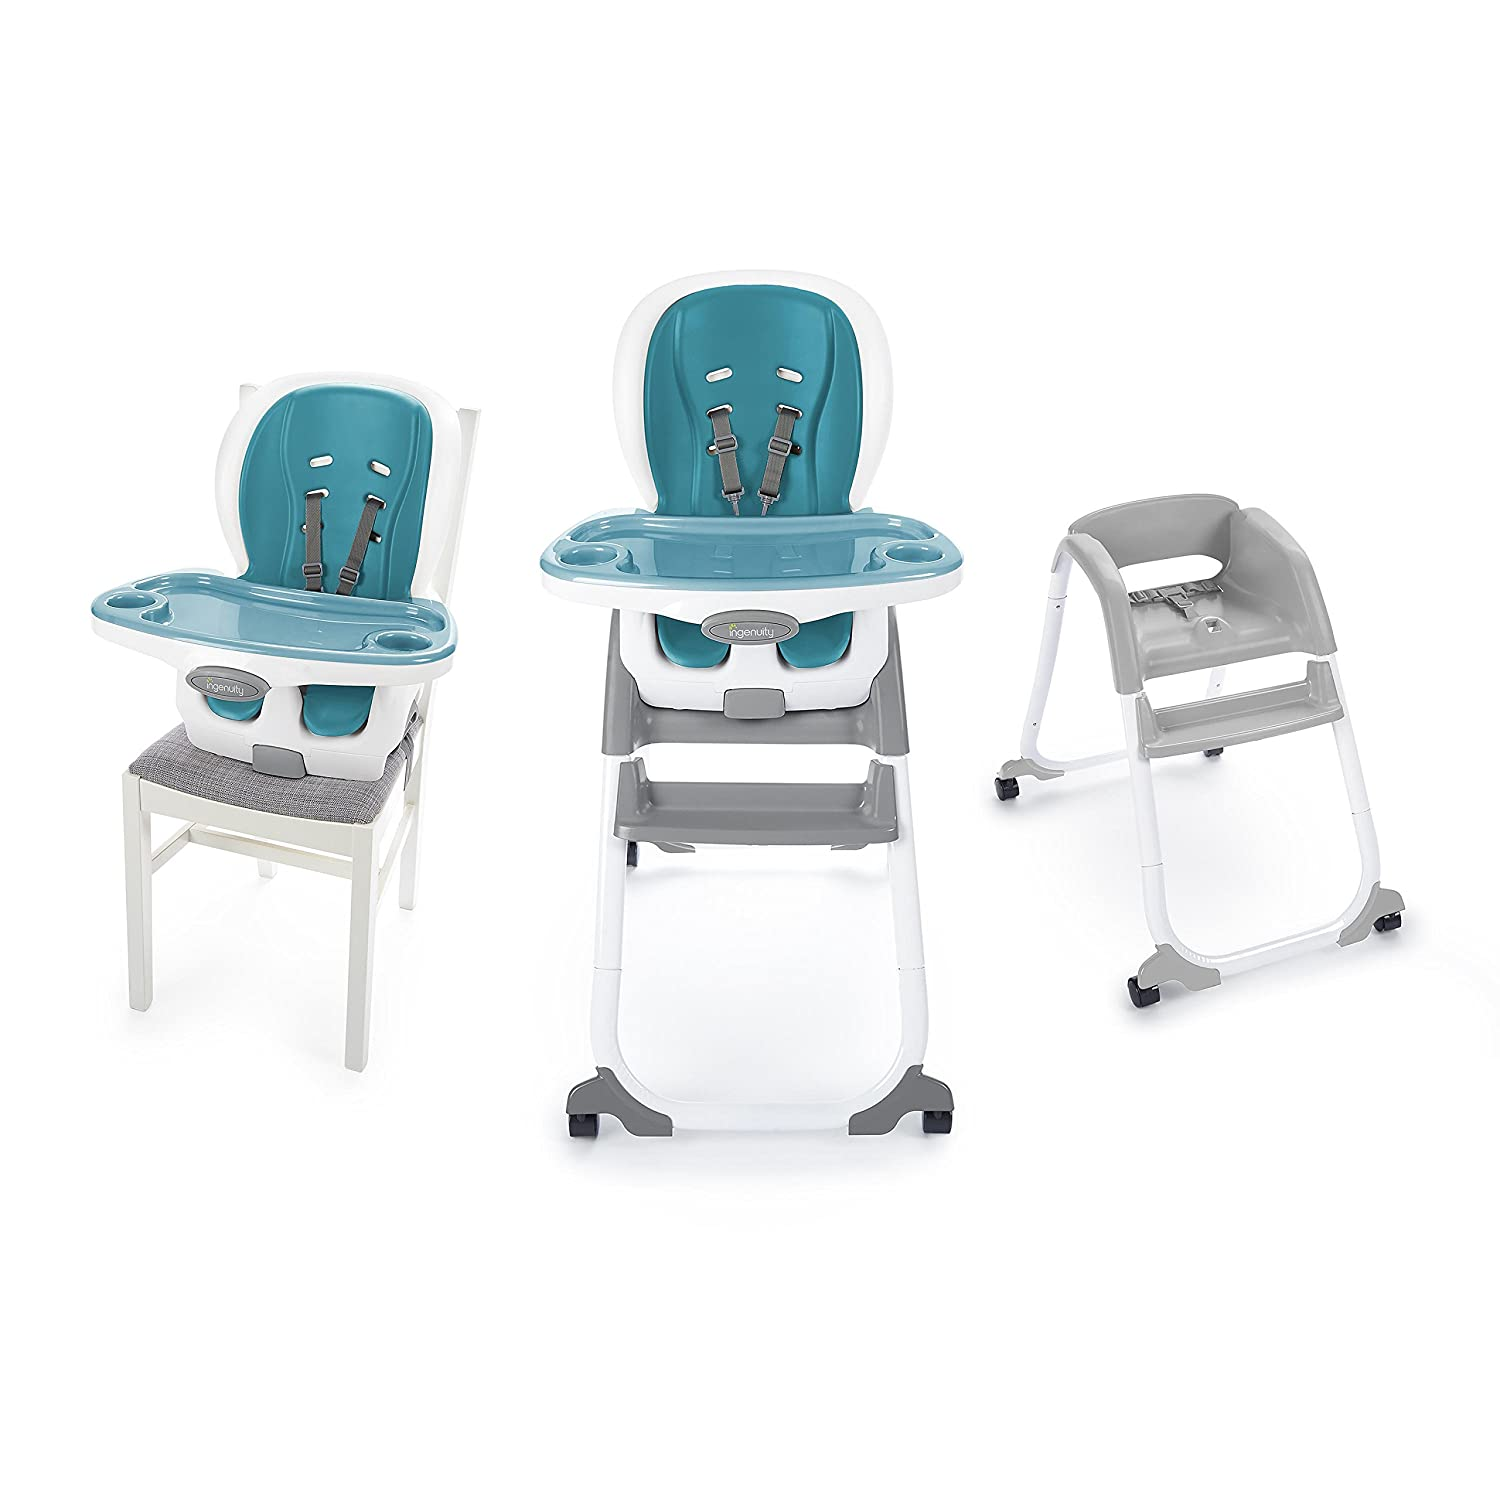 Ingenuity SmartClean Trio Elite 3-in-1 High Chair - Slate - High Chair, Toddler Chair, and Booster Kids II - (Carson CA) 11610-1-W11